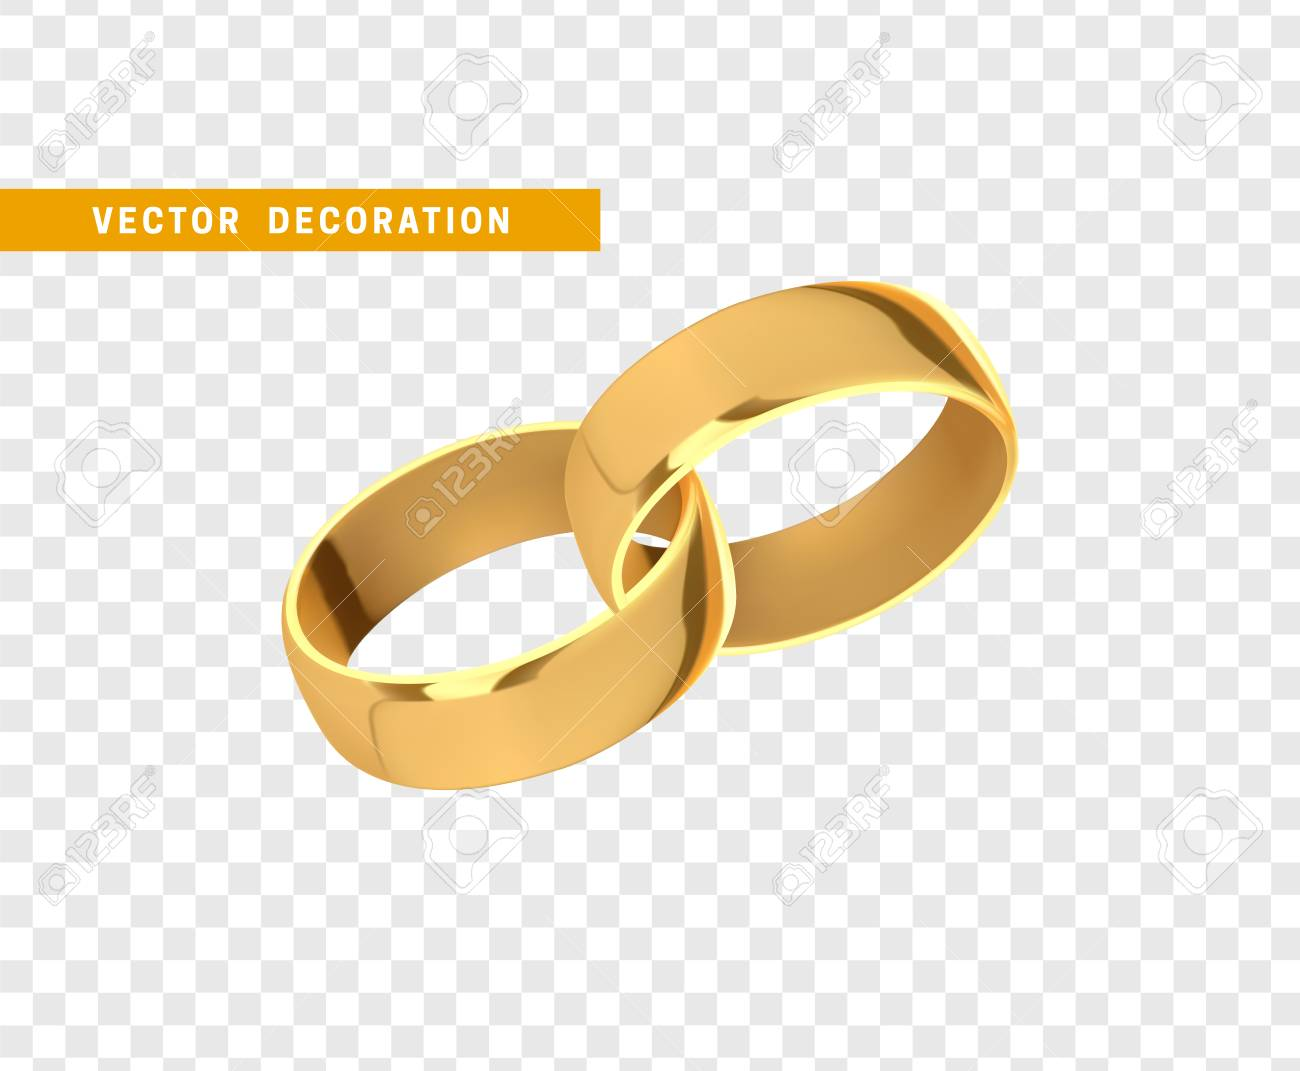 Golden Wedding Rings Realistic Design Isolated On Transparent Background Stock Vector 97894848: Wedding Ring Without Background At Websimilar.org